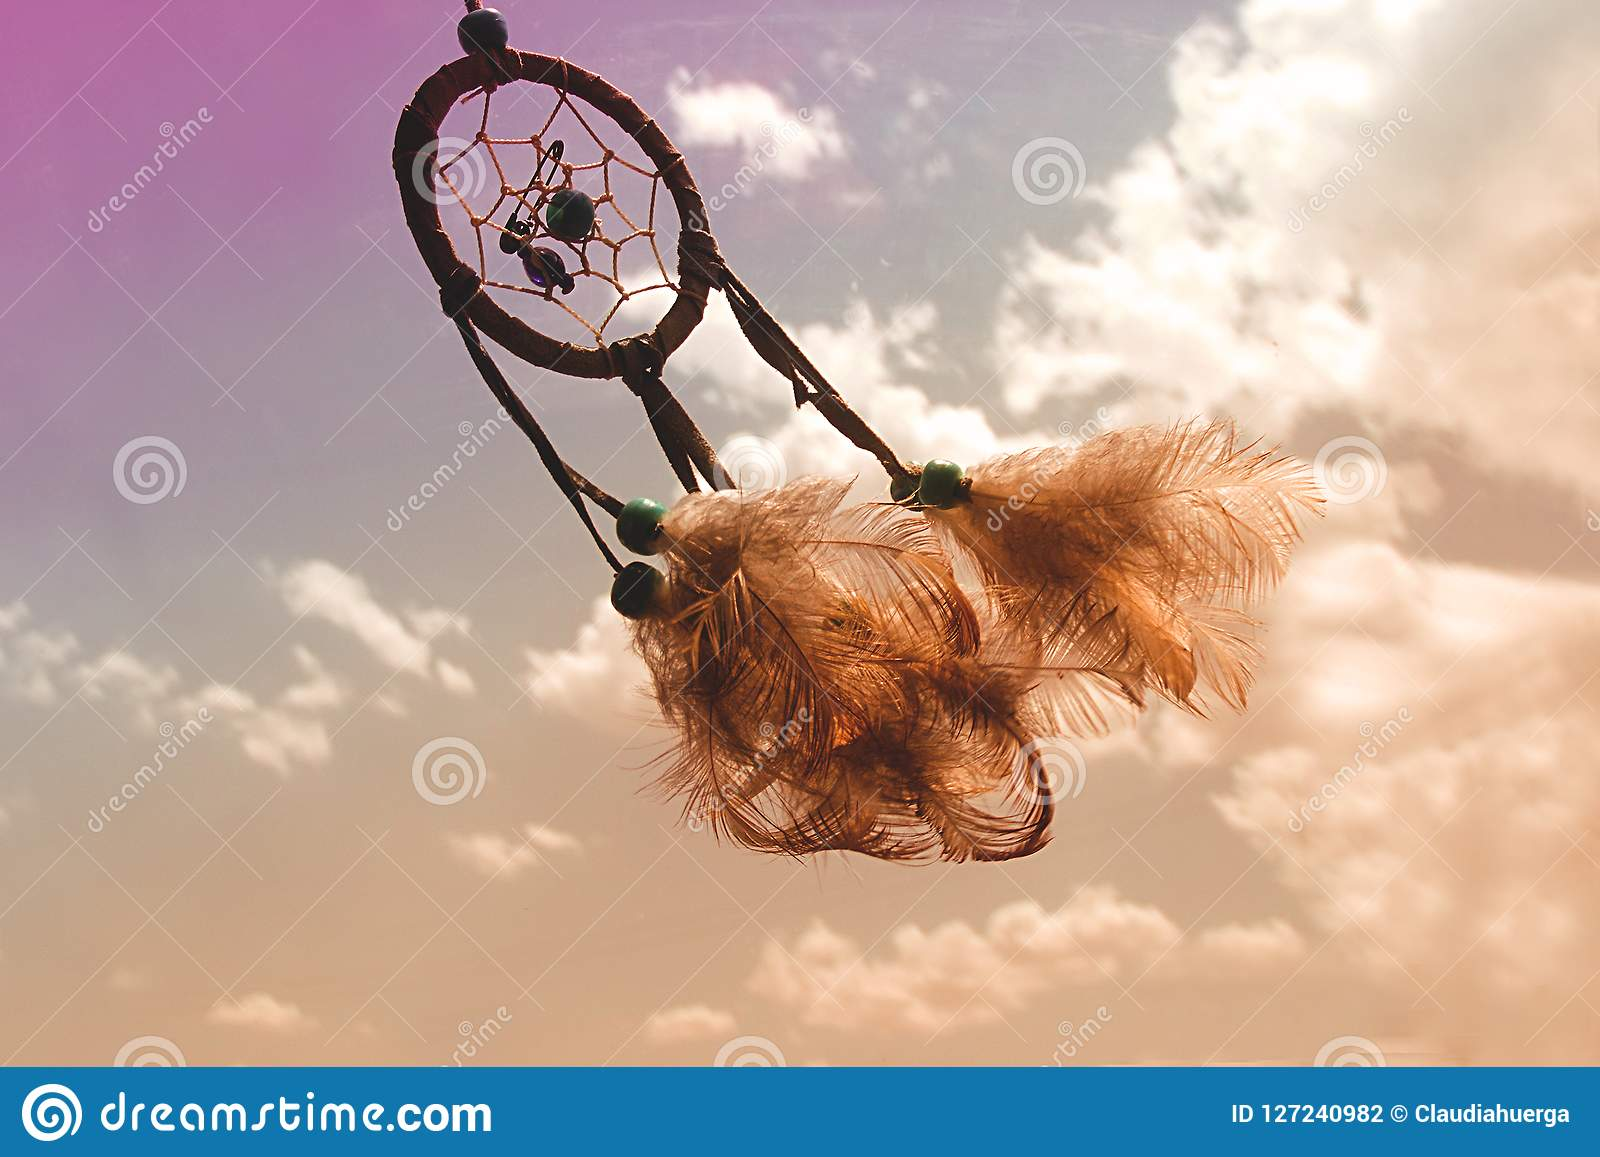 Dream catcher flying over a cloudy -colourful sky.